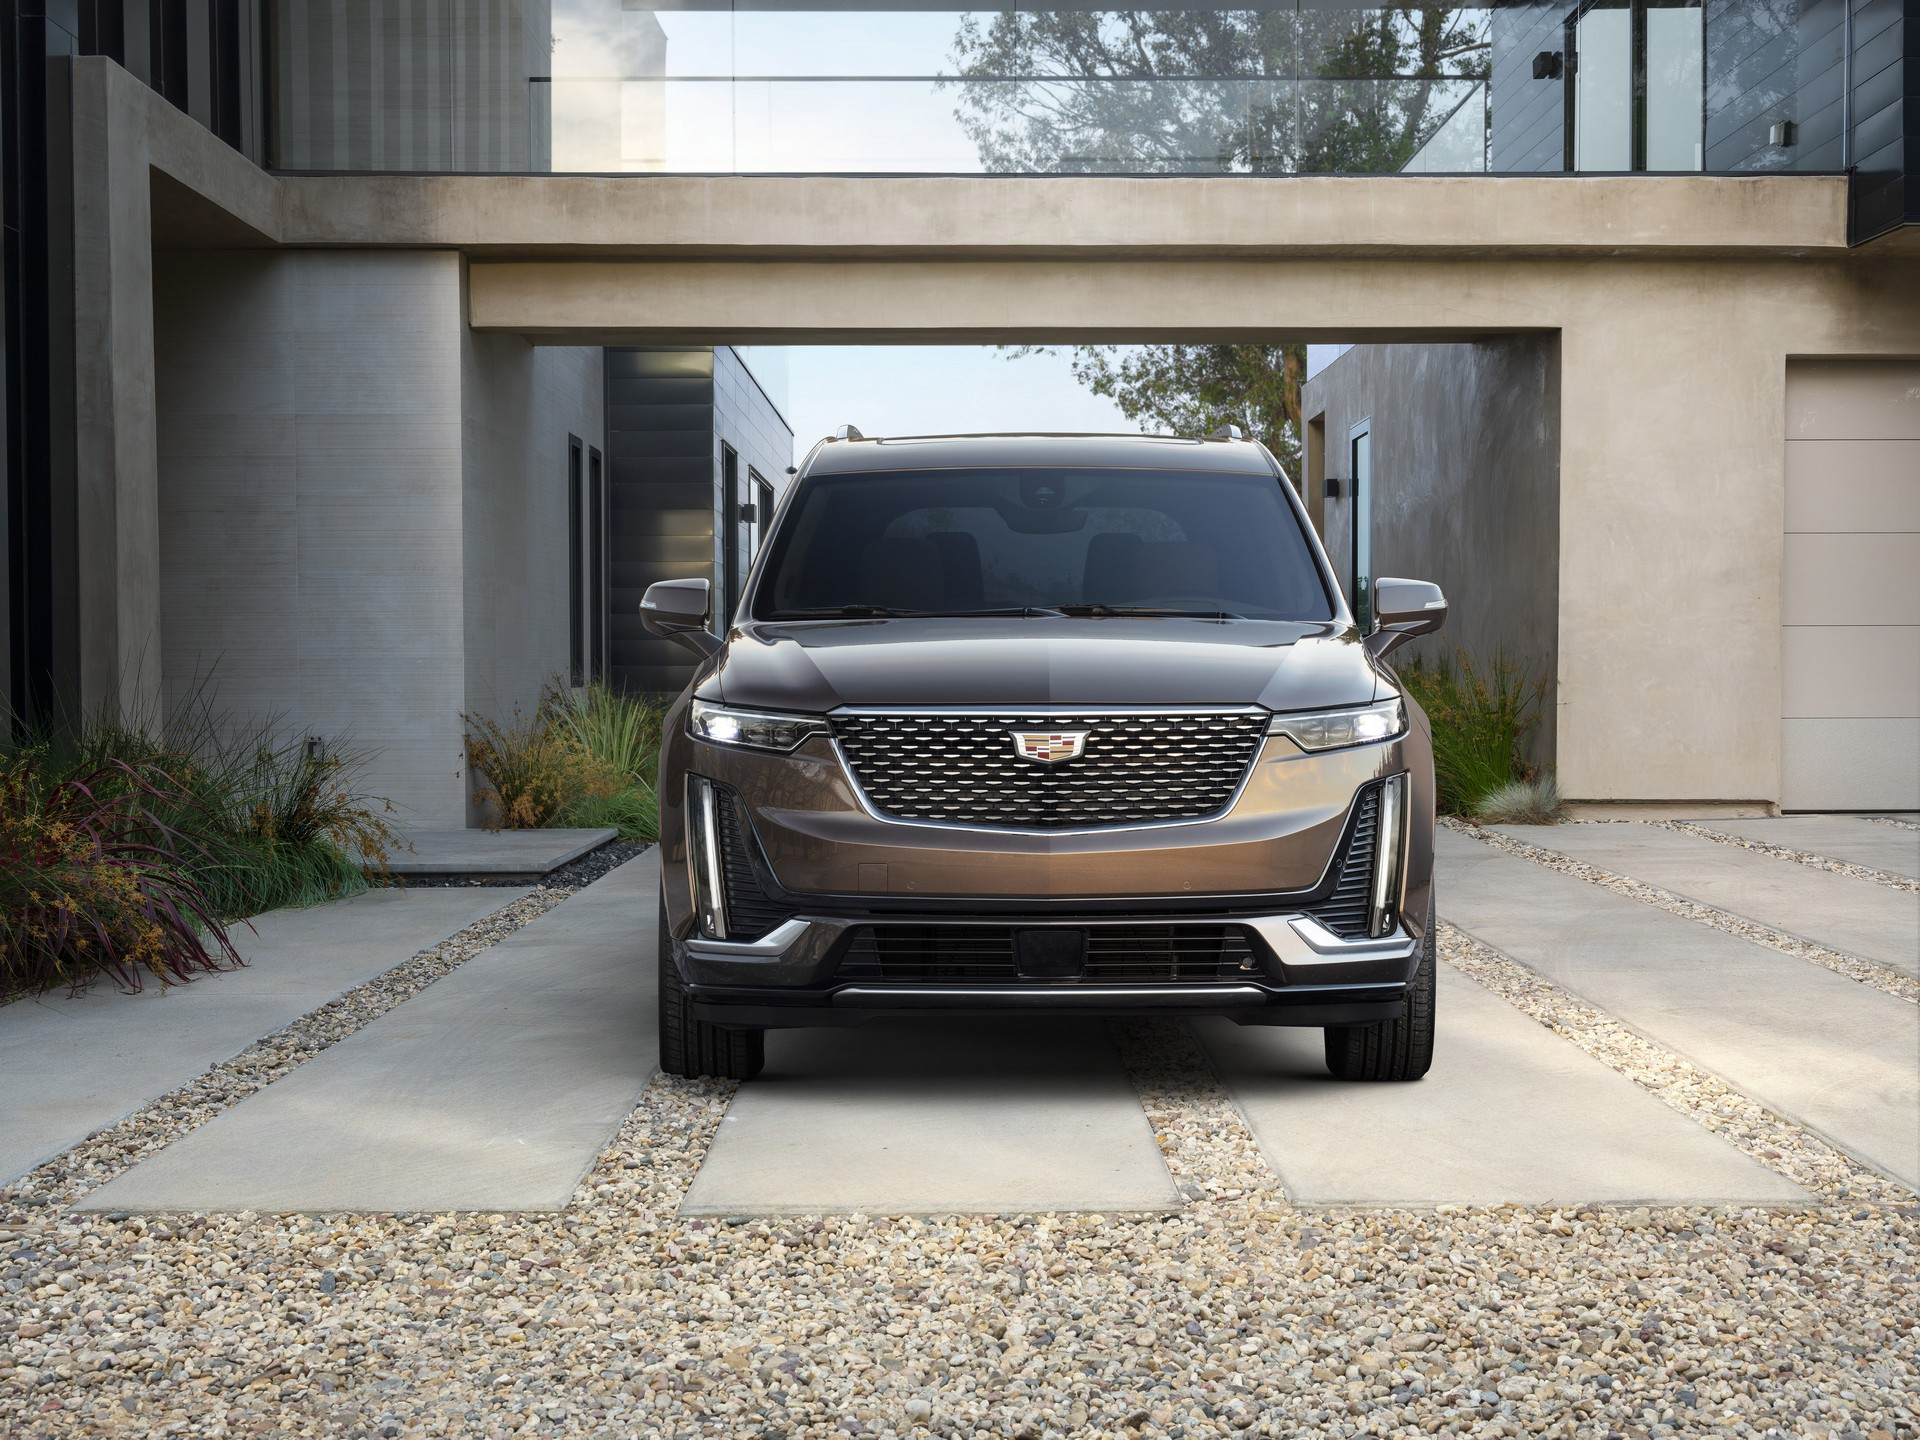 Cadillac Takes Aim at Tesla With SUV Priced Below Model X